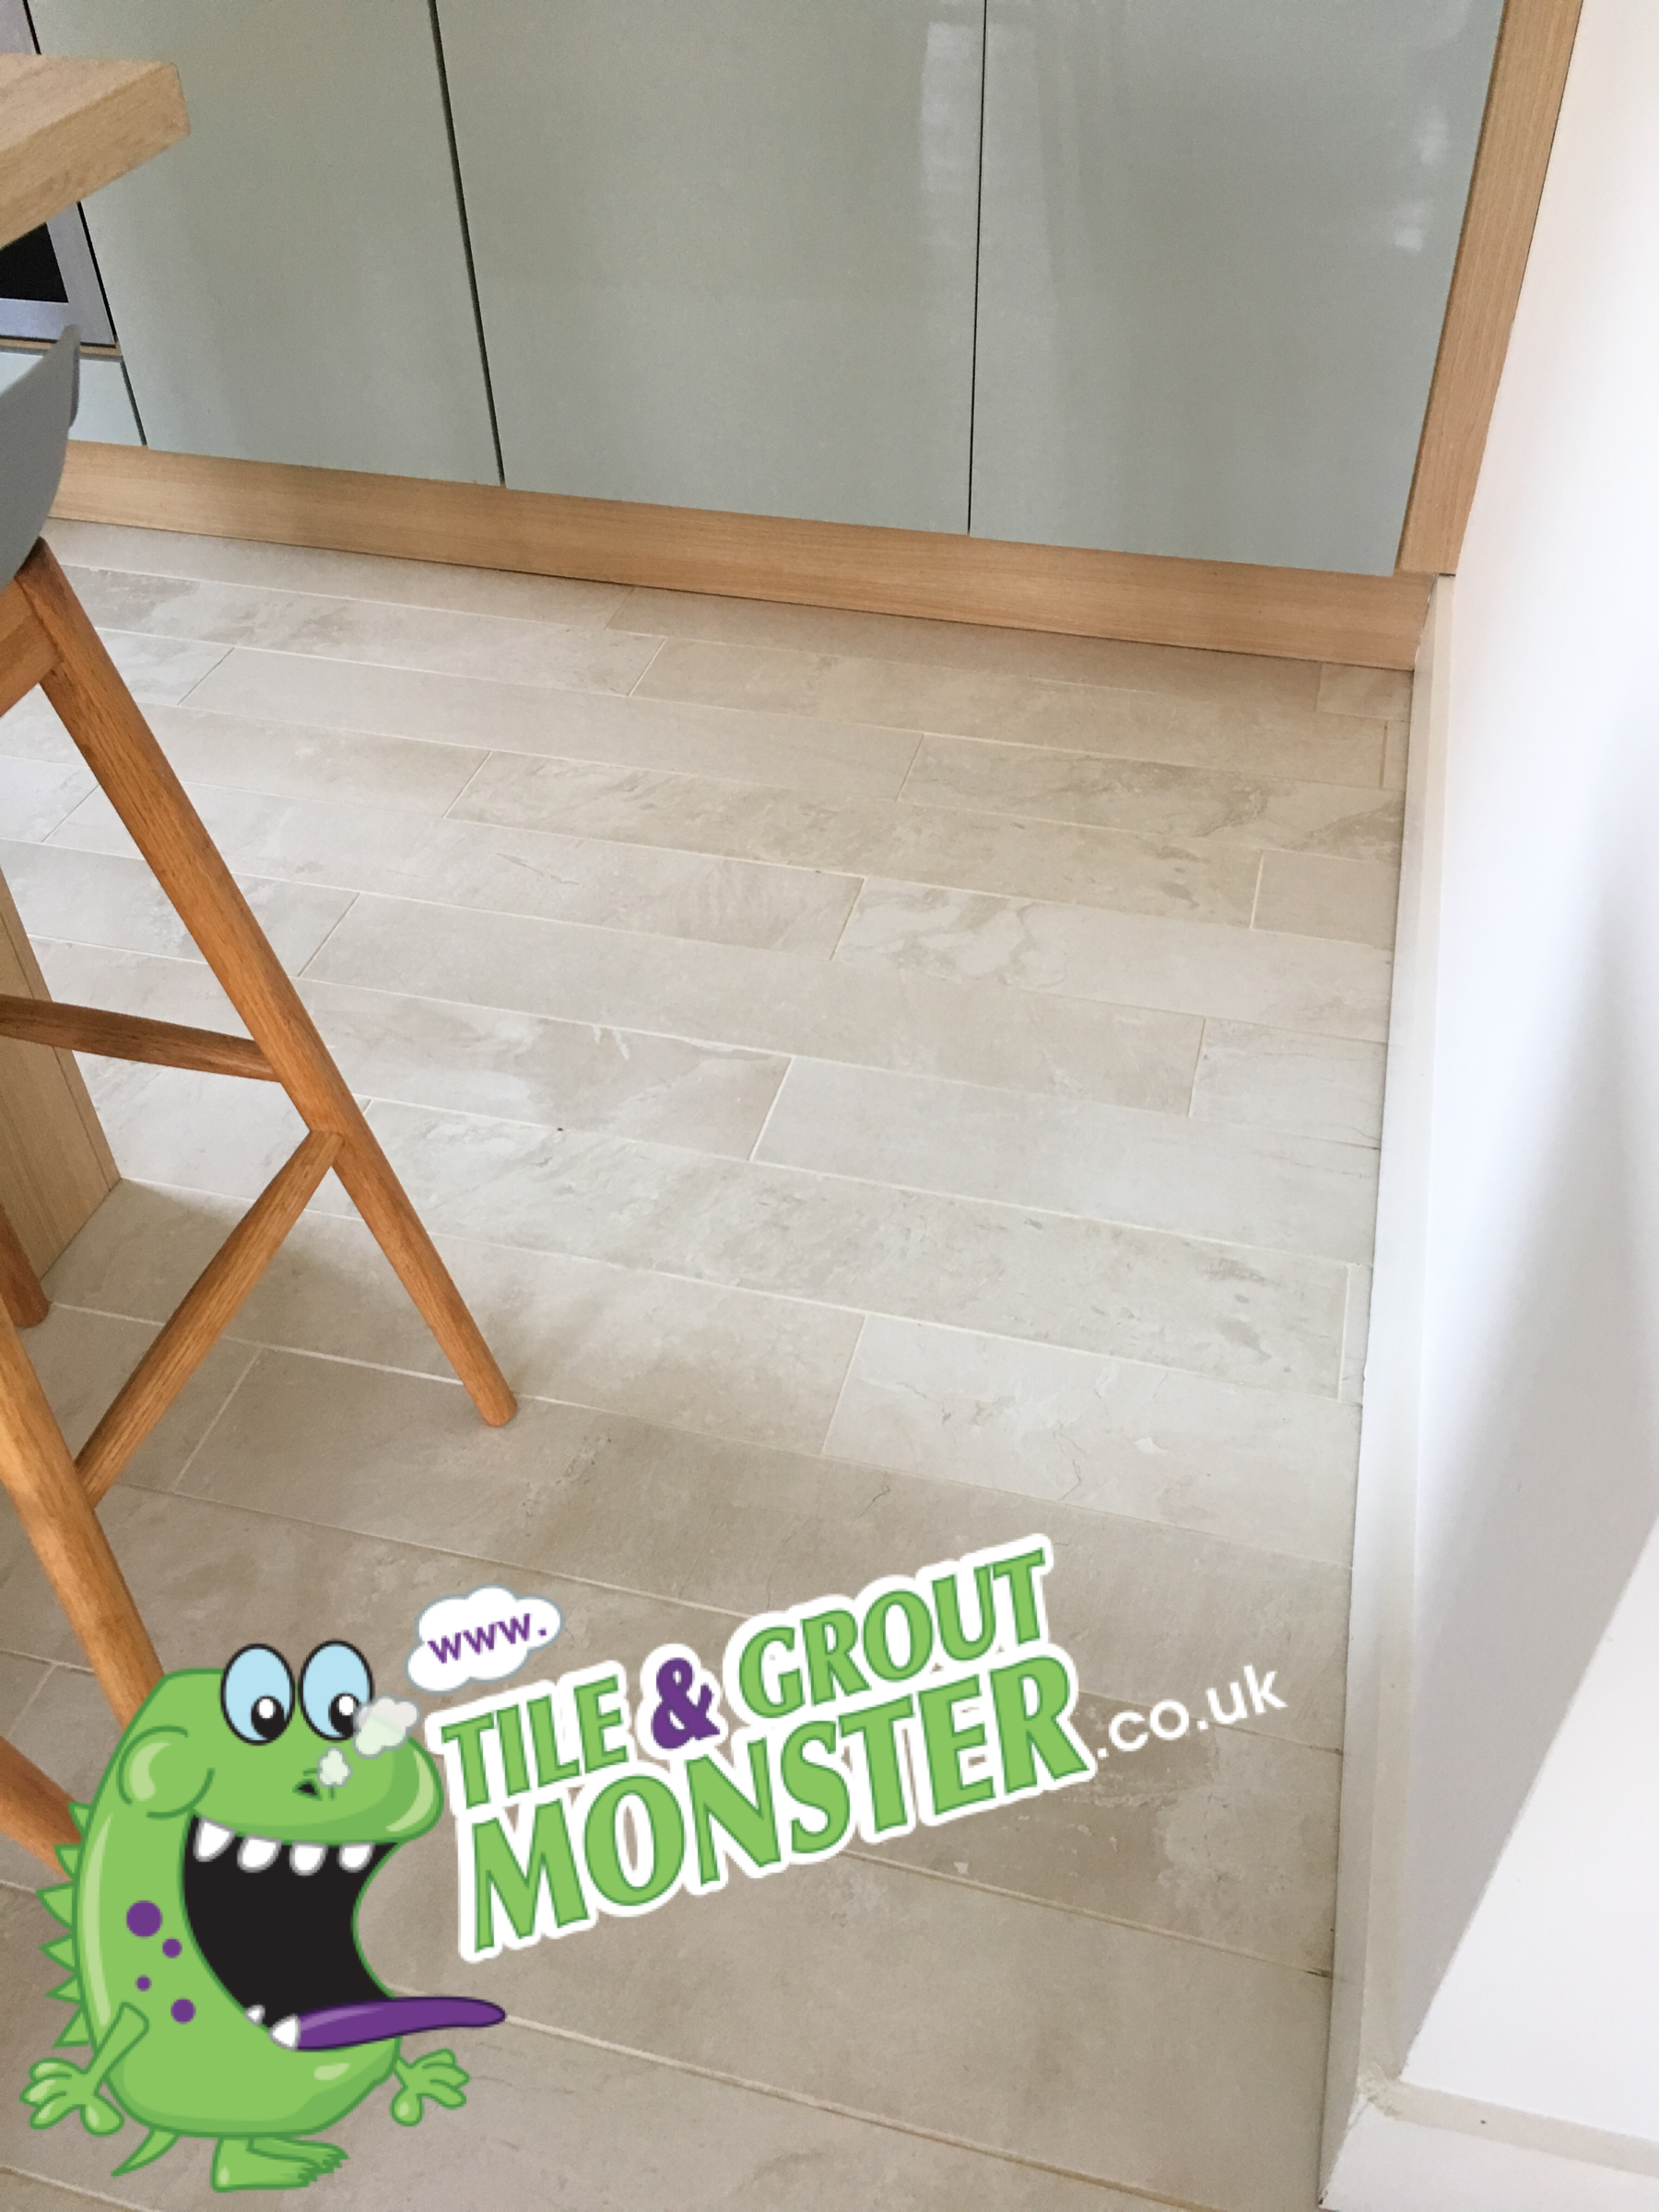 tiled floors cleaned by the TILE & GROUT MONSTER CLEANING SERVICE